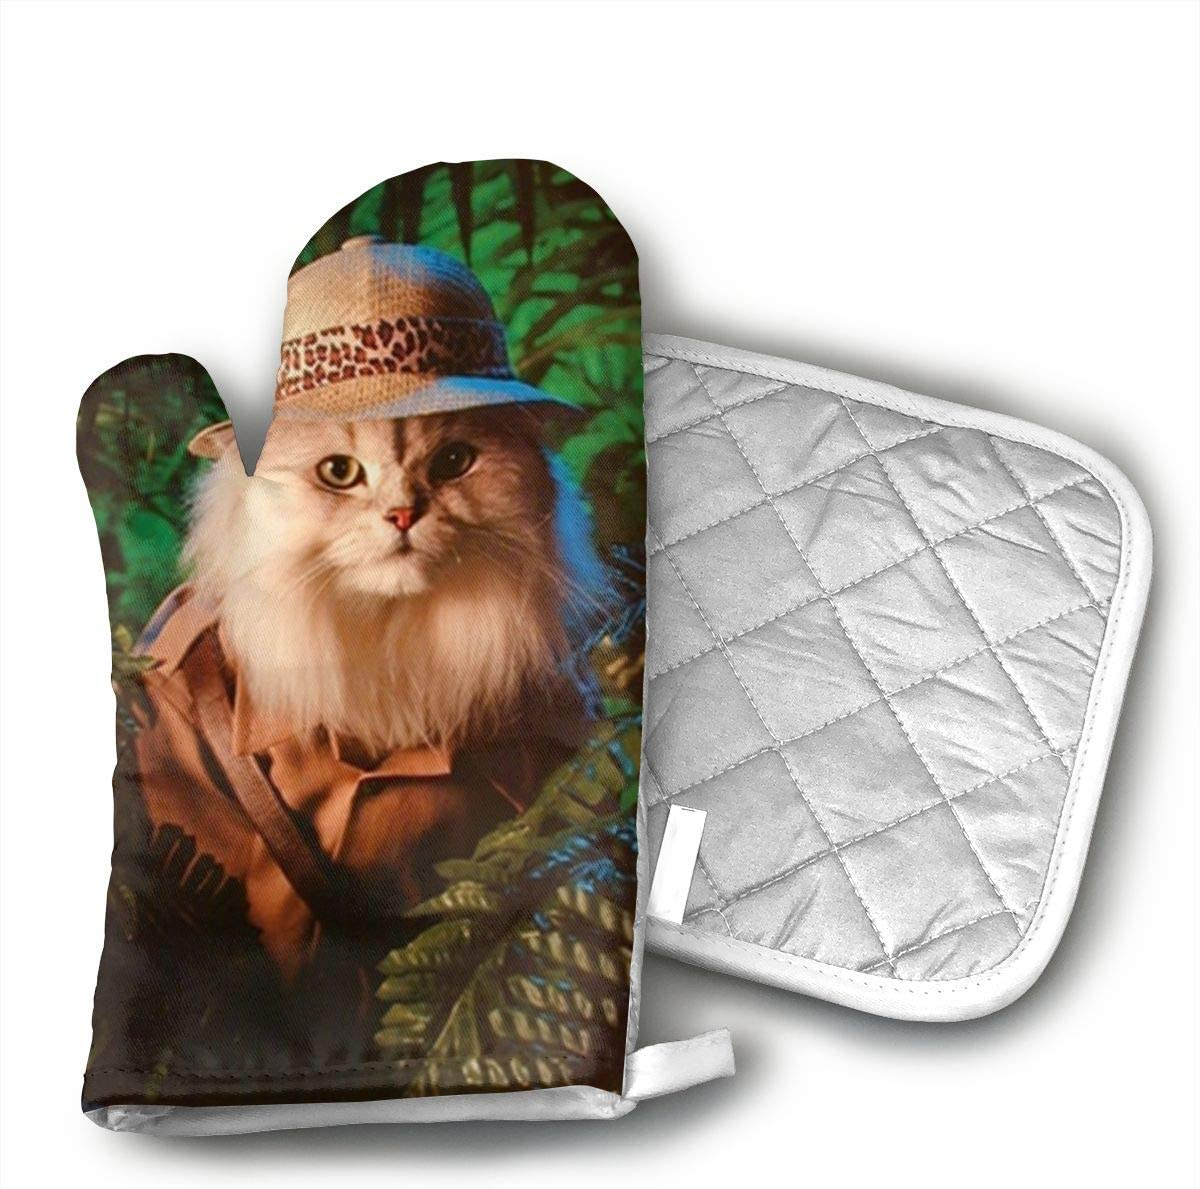 CHWEYAQ Safari Cat Cute Funny Kittens Animal Art Print Cotton Heat Resistant Double Oven Mitts/Gloves Potholder Extra for Kitchen Cooking Baking